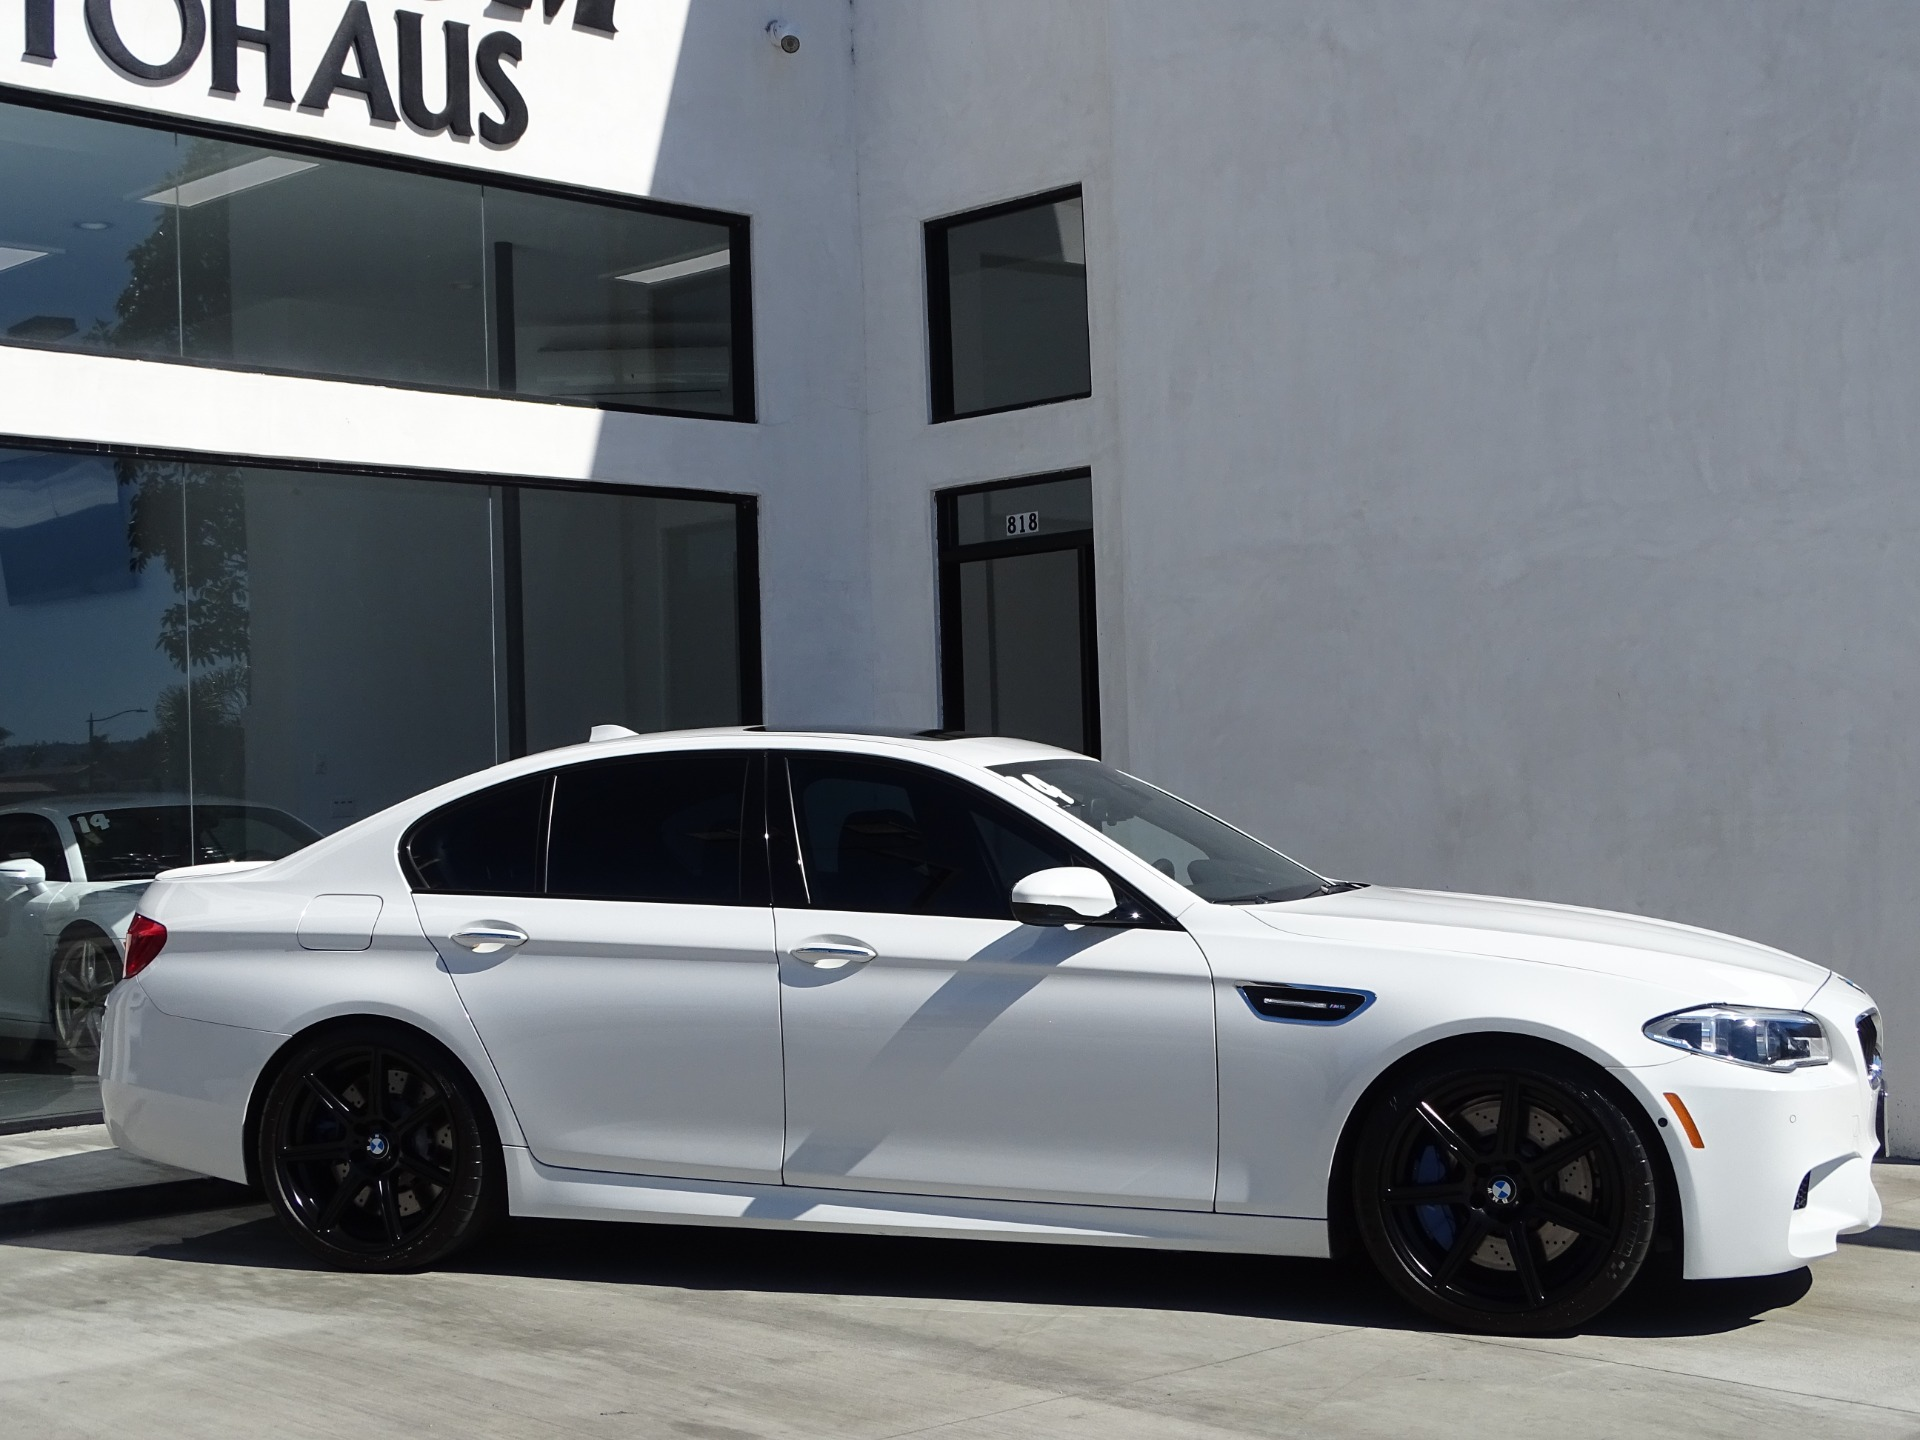 Bmw Dealership Near Me >> 2014 BMW M5 *** Competition Package *** Stock # 6415 for sale near Redondo Beach, CA | CA BMW Dealer